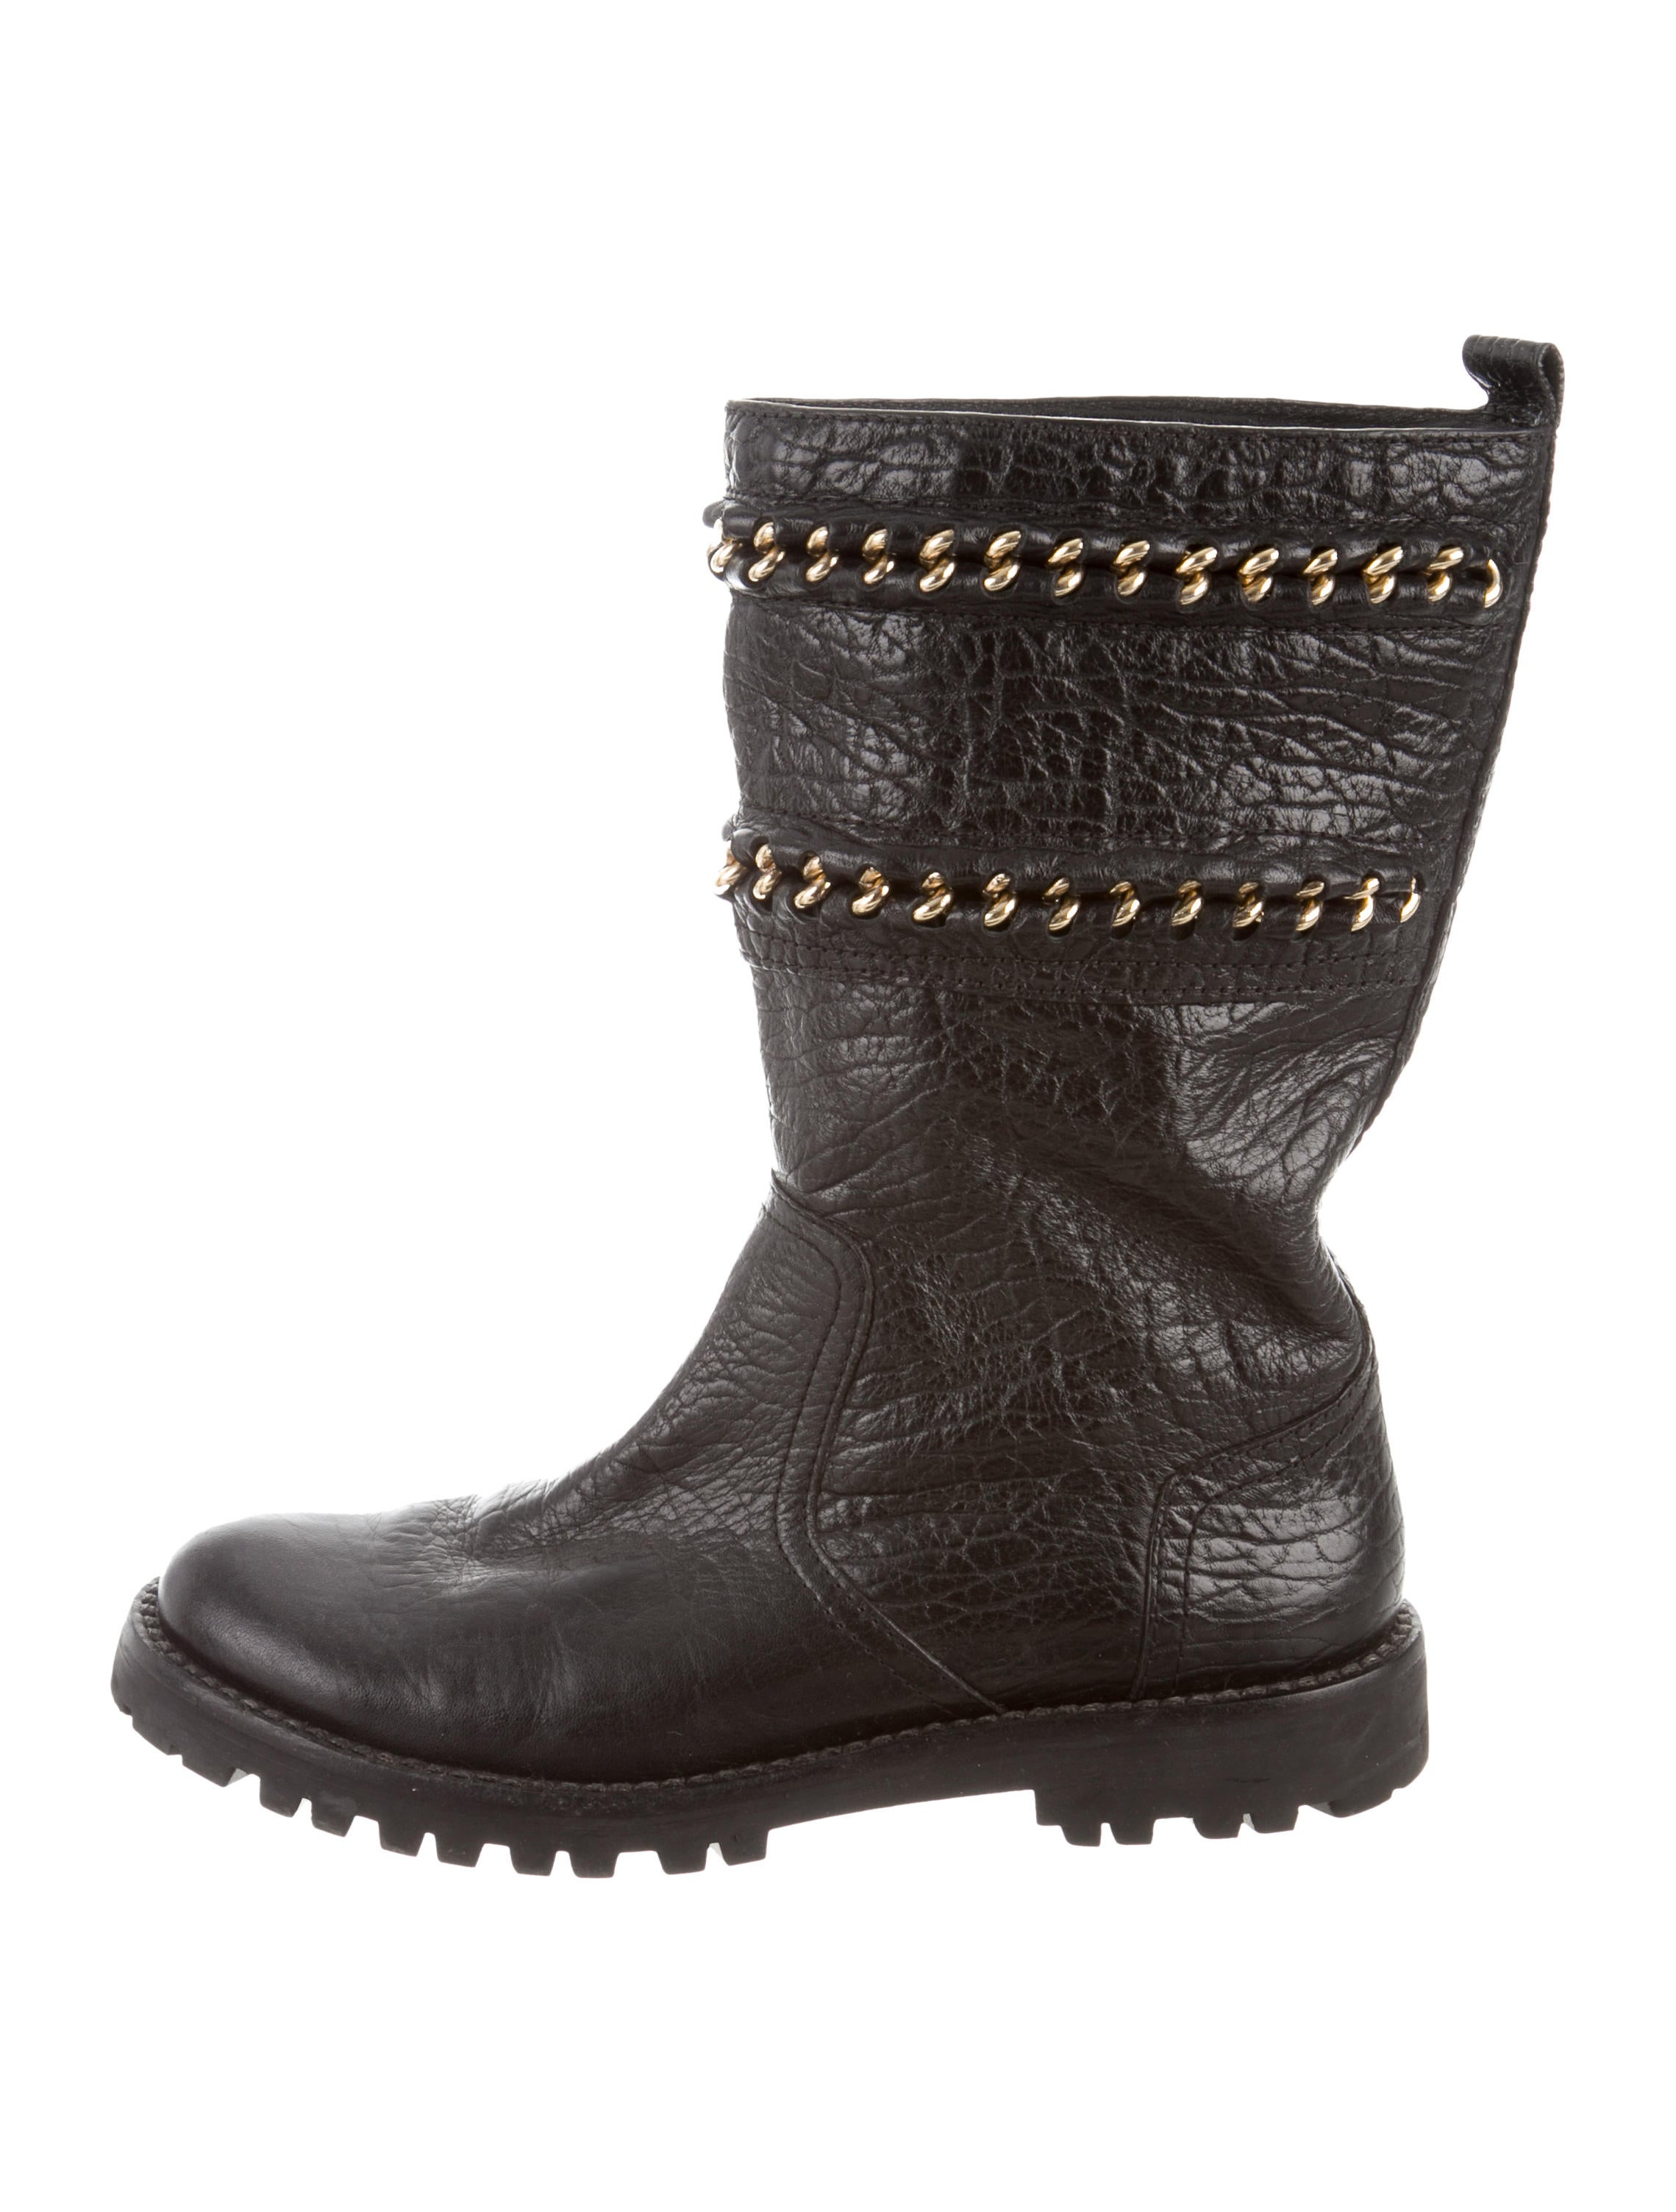 b43b0cf21876 Tory Burch Leather Mid-Calf Boots - Shoes - WTO134380